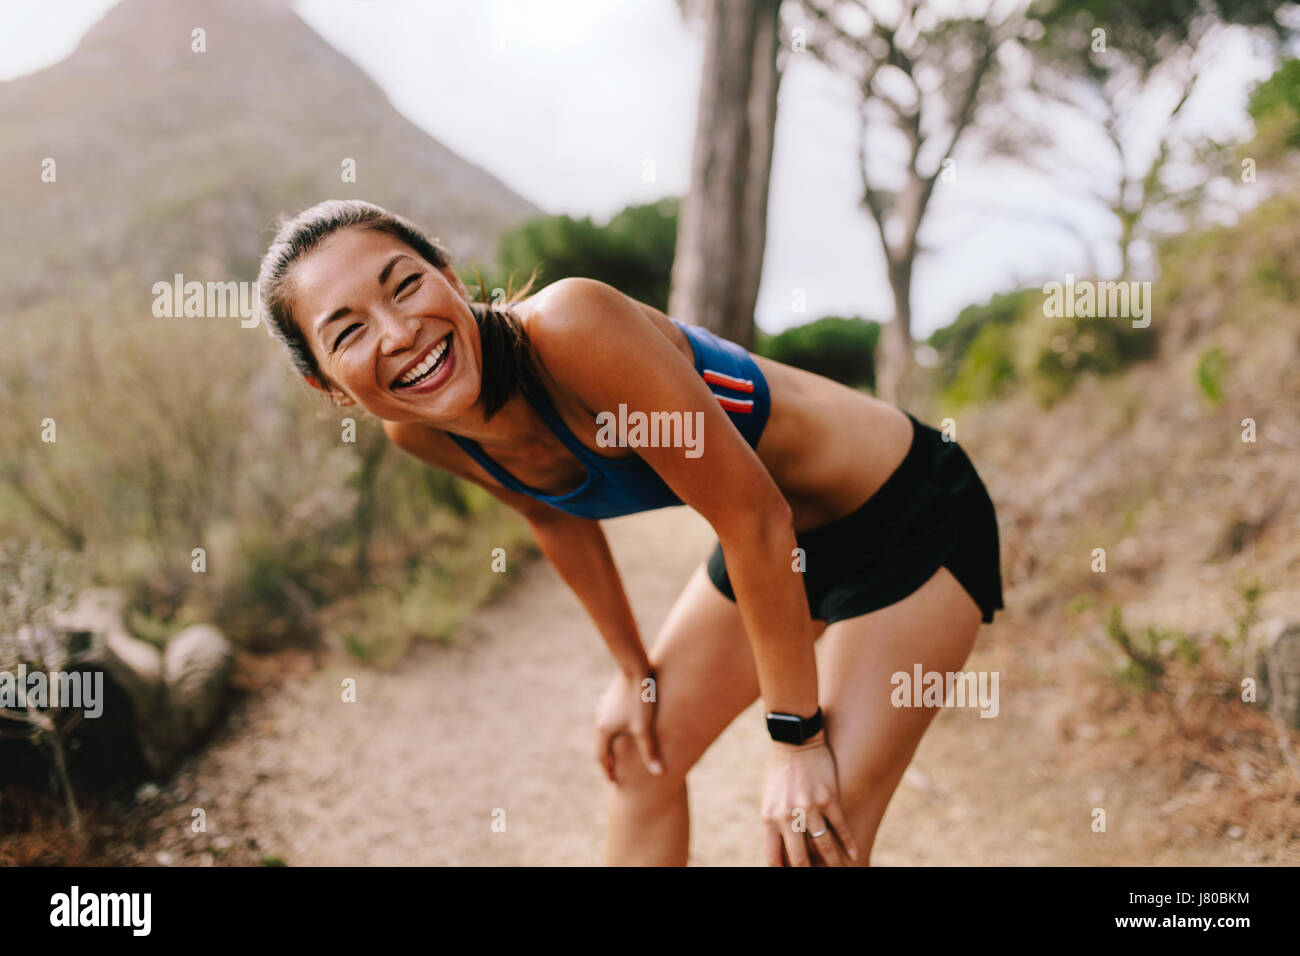 Healthy young woman standing on mountain trail with her hands on knees and laughing. Asian female runner in sportswear - Stock Image